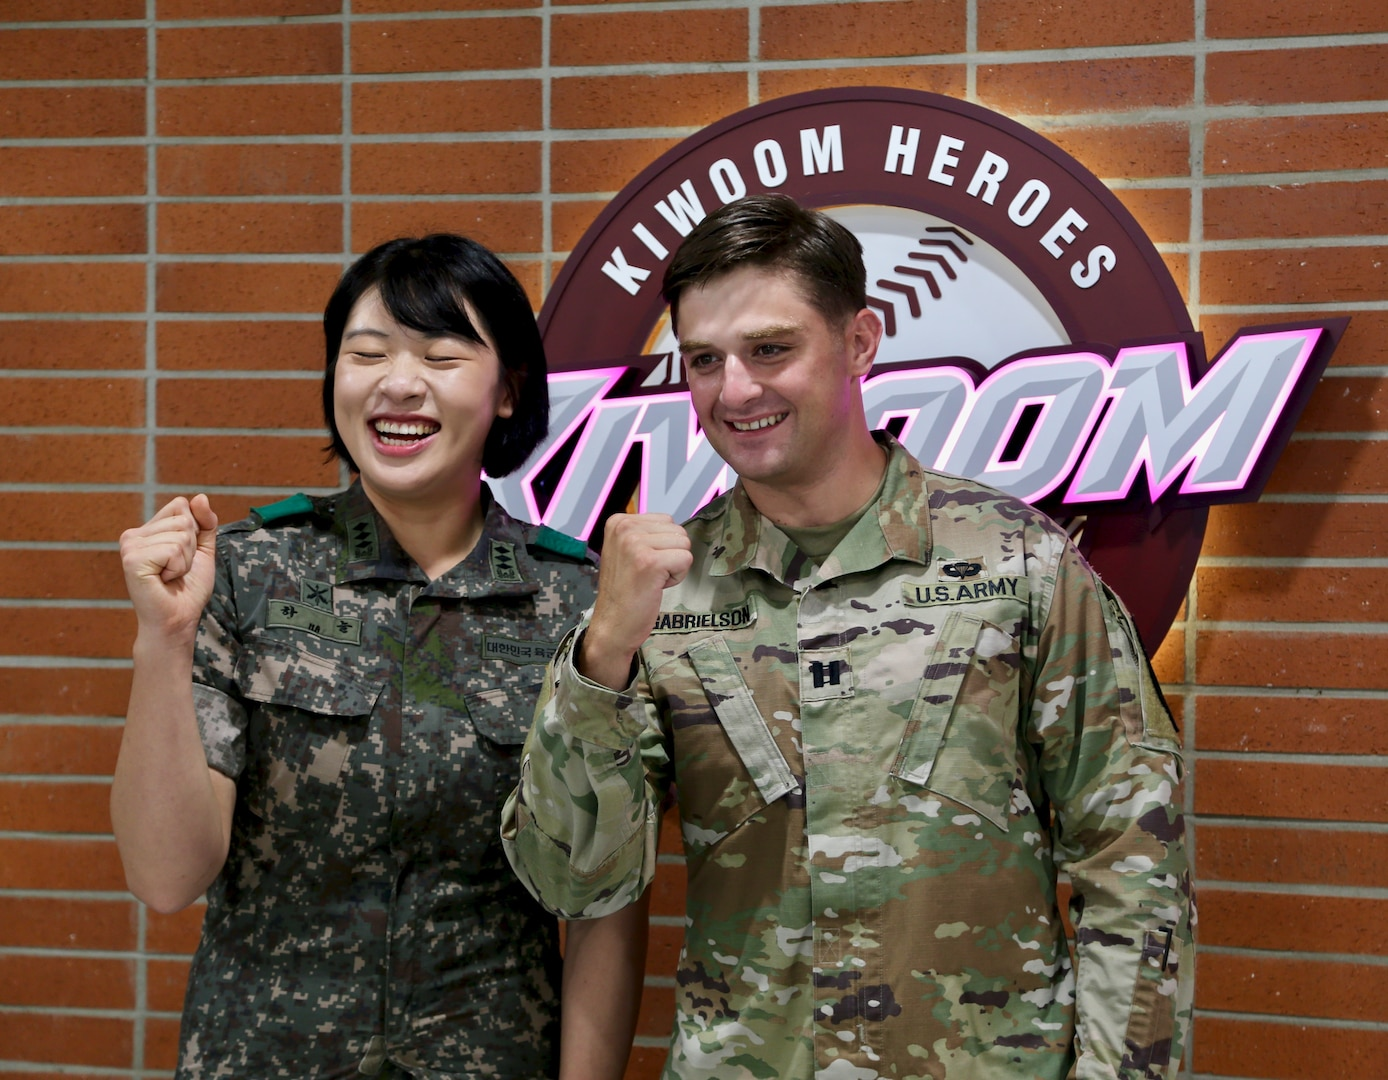 U.S. Army Capt. Miles Garbielson and ROK Army Capt. Ha Neul prepare for their participation in the ceremonial first pitch before South Korea's professional baseball game between the Kiwoom Heroes and the Kia Tigers at Gecheok Sky Dome on June 25, 2021.